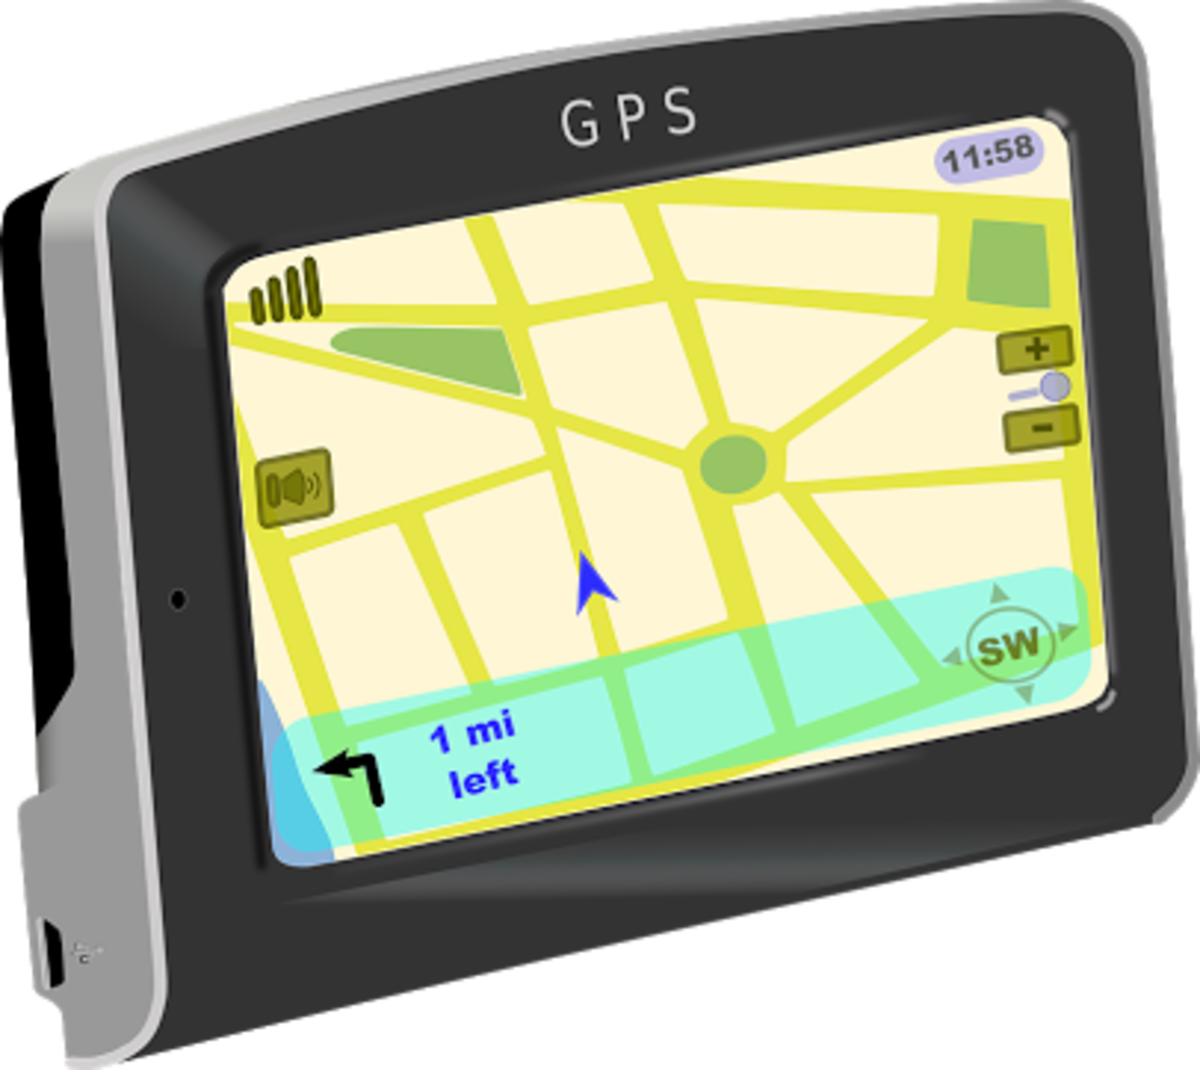 GPS - a widely used and very useful app